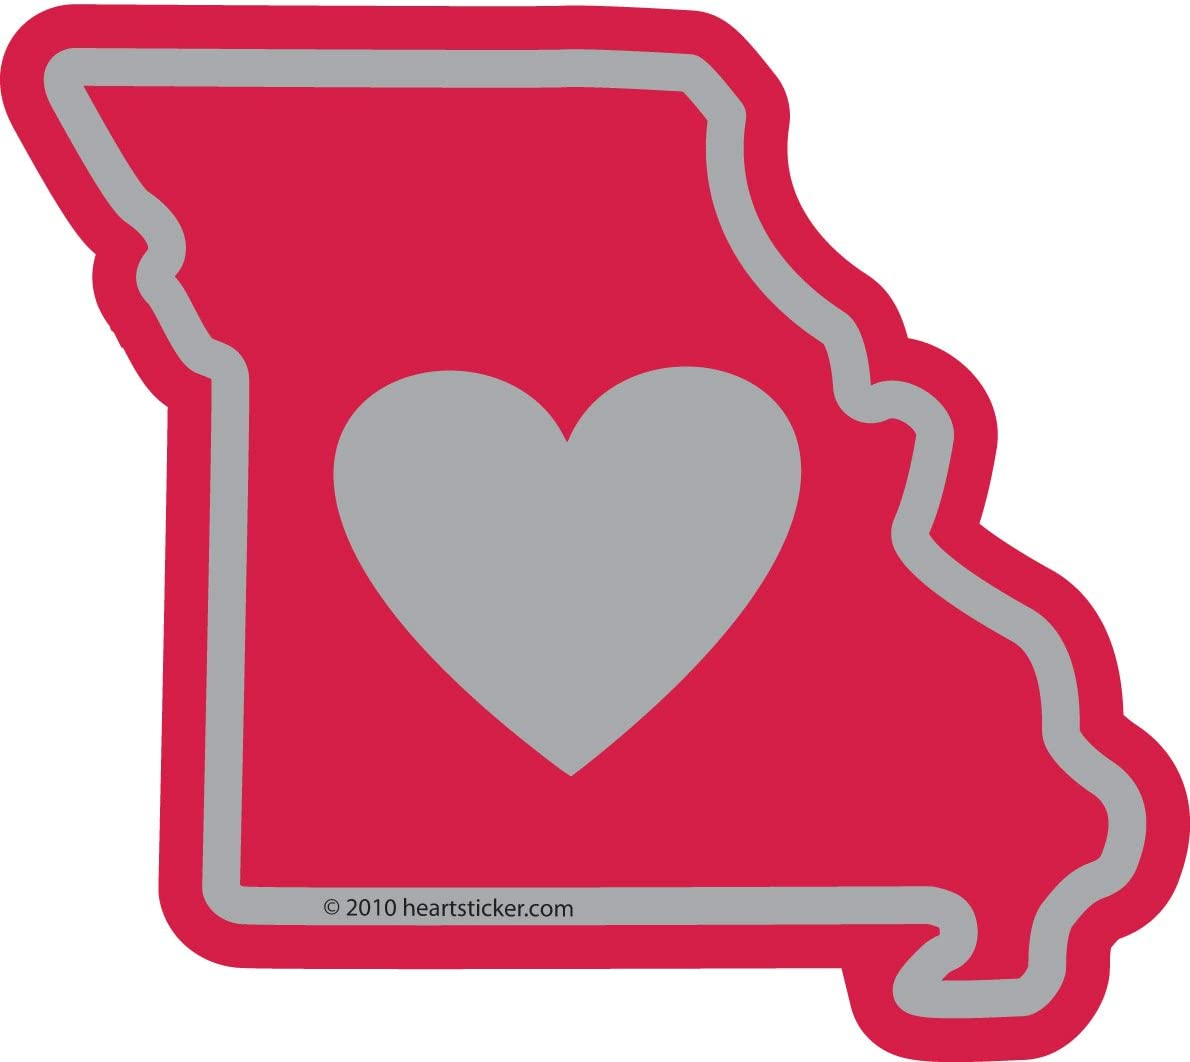 Heart in Missouri Sticker   MO State Shaped Label   Apply to Mug Phone Laptop Water Bottle Decal Cooler Bumper   St Louis Chief KC Royal Blue Cardinal Show Me Gateway Arch Independence Springfield